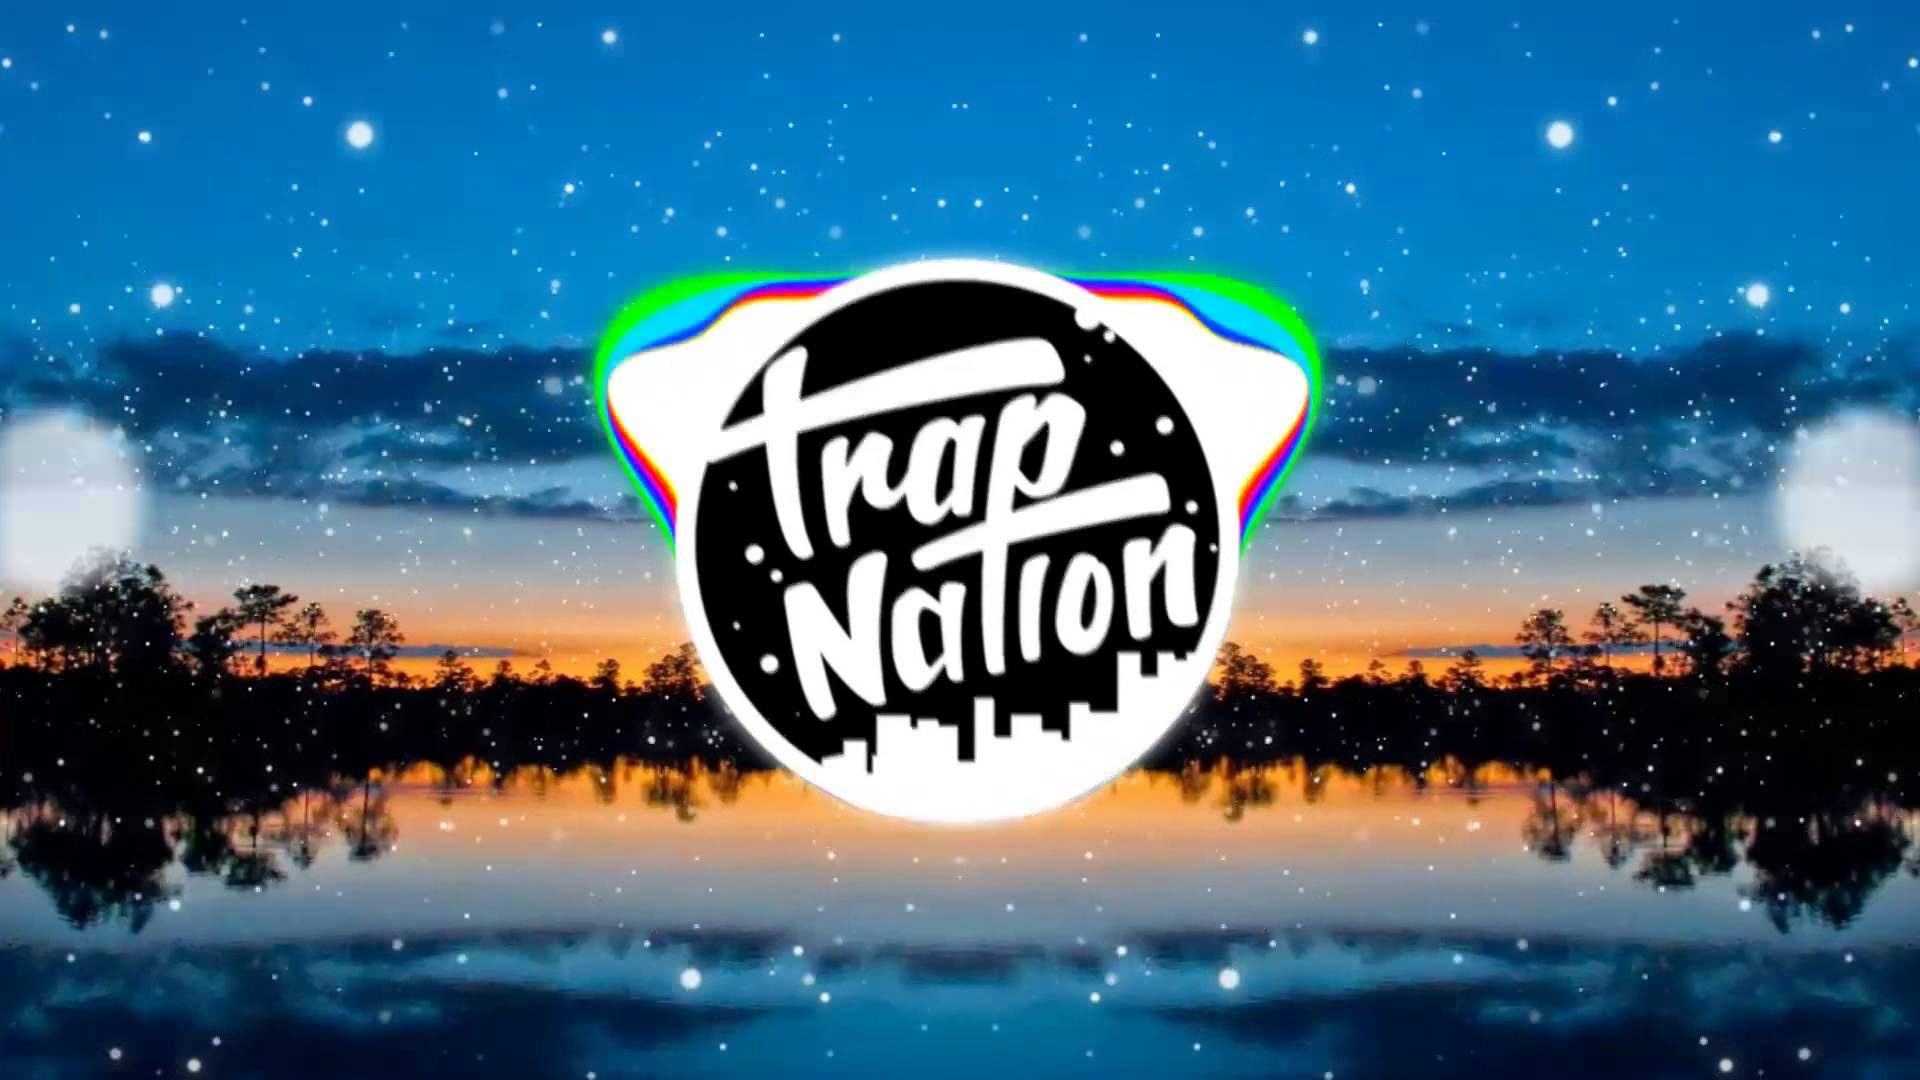 Download Trap Nation Wallpaper Gallery